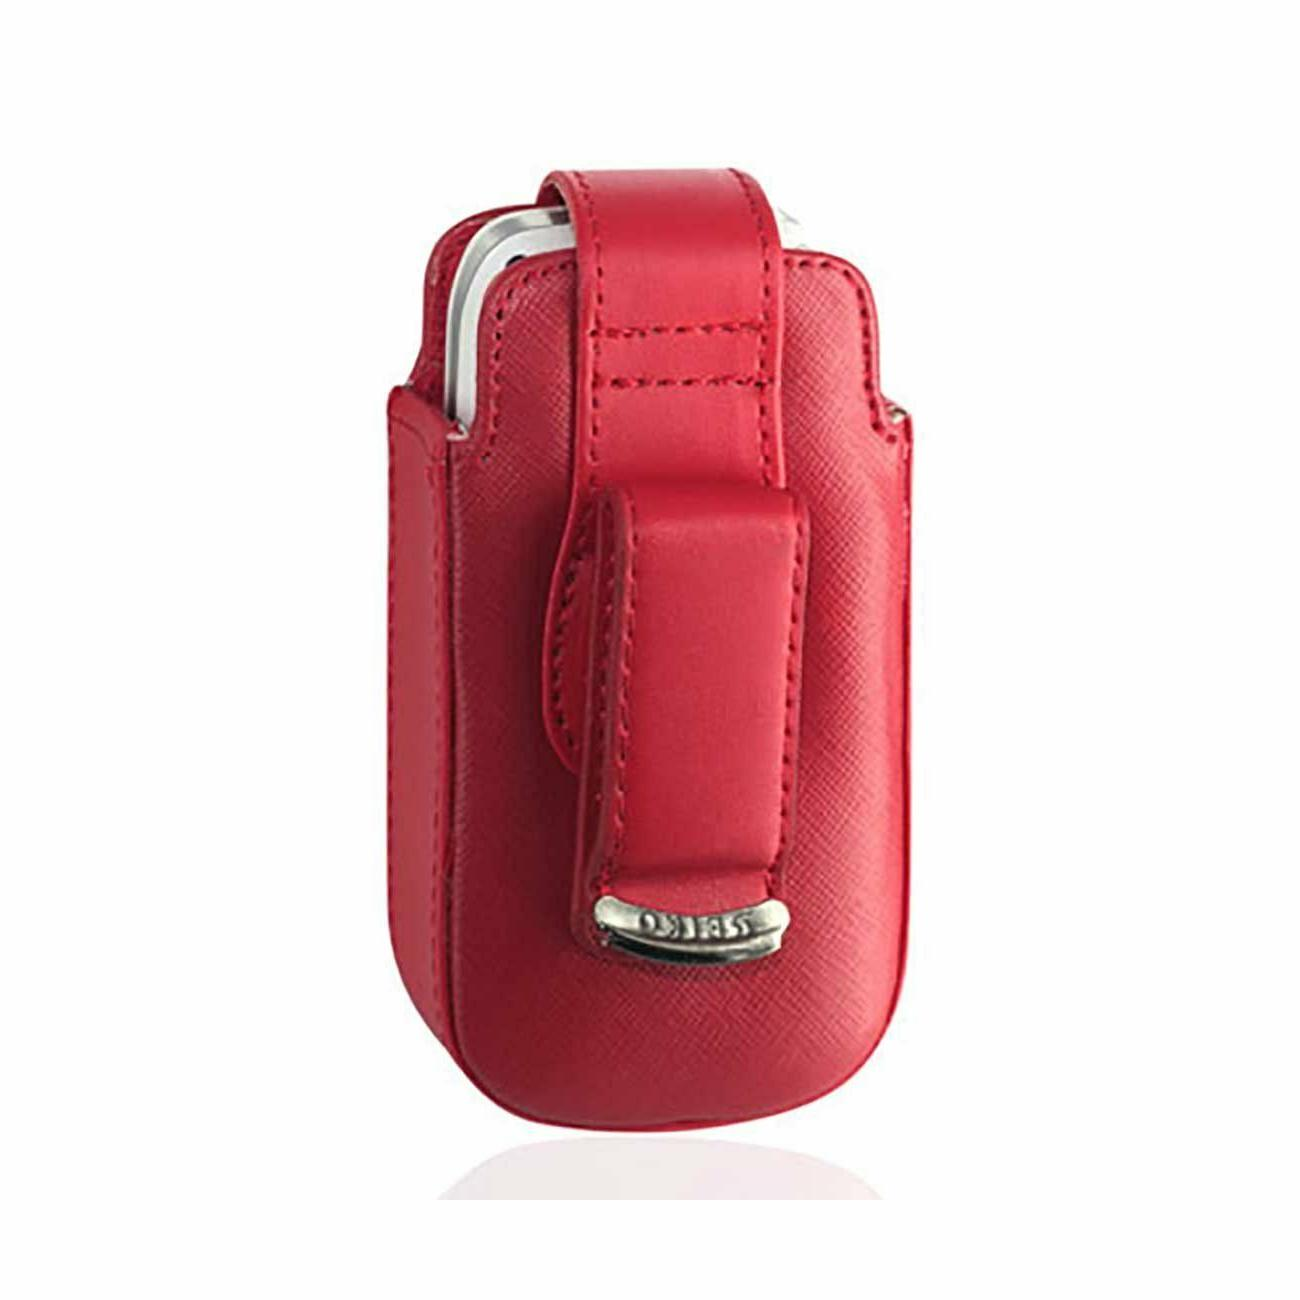 Red Vertical fits Jethro flip phone